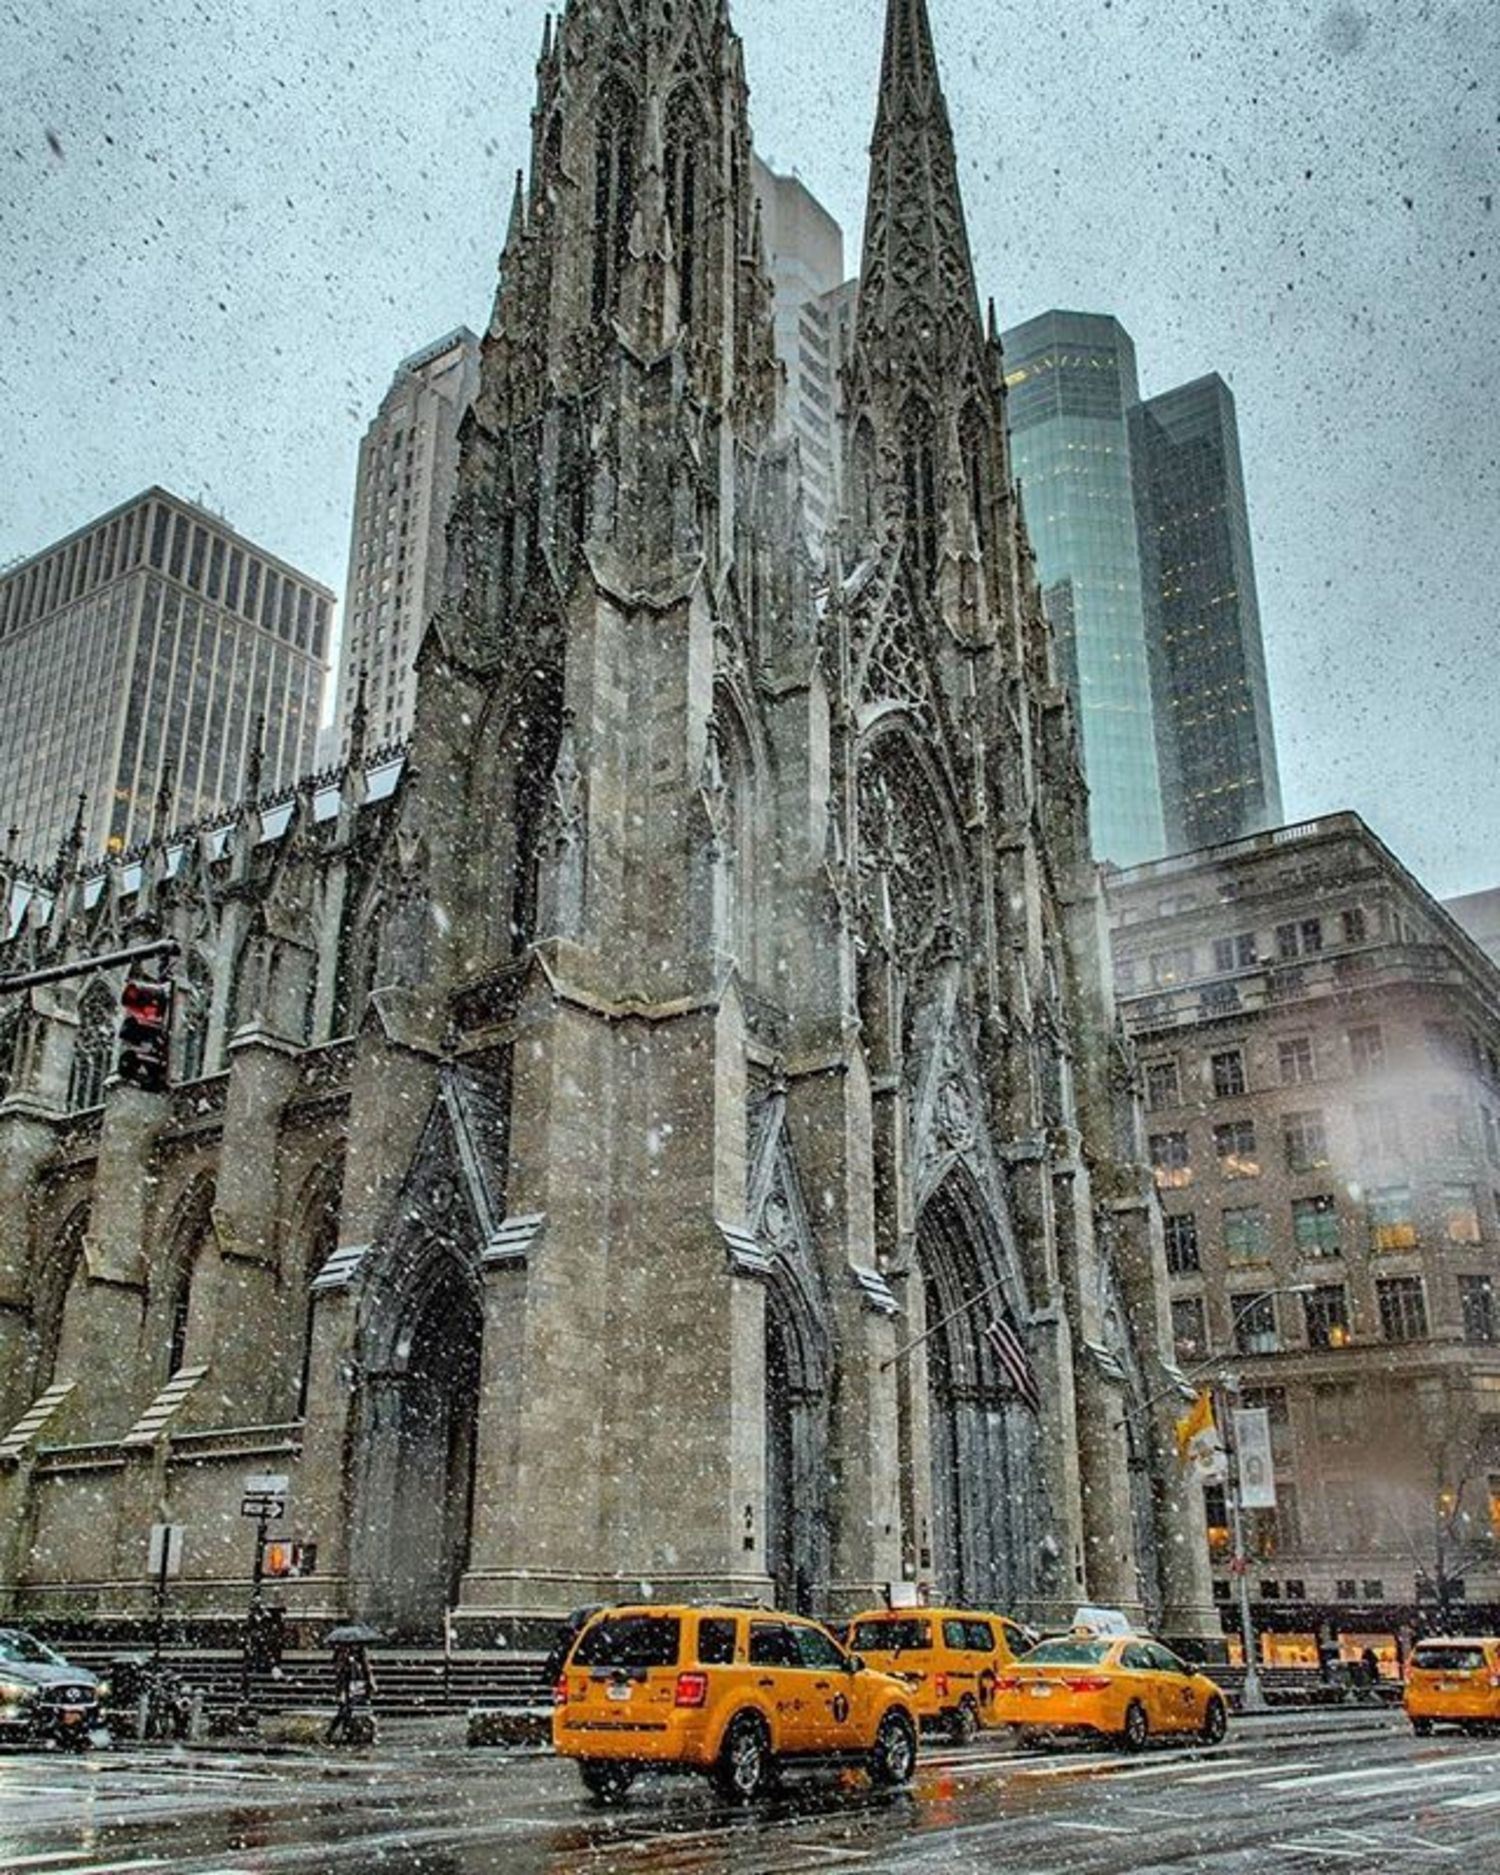 St. Patrick's Cathedral, New York, New York. Photo via @ericknyc_ #viewingnyc #newyork #newyorkcity #nyc #snow #stpatrickscathedral